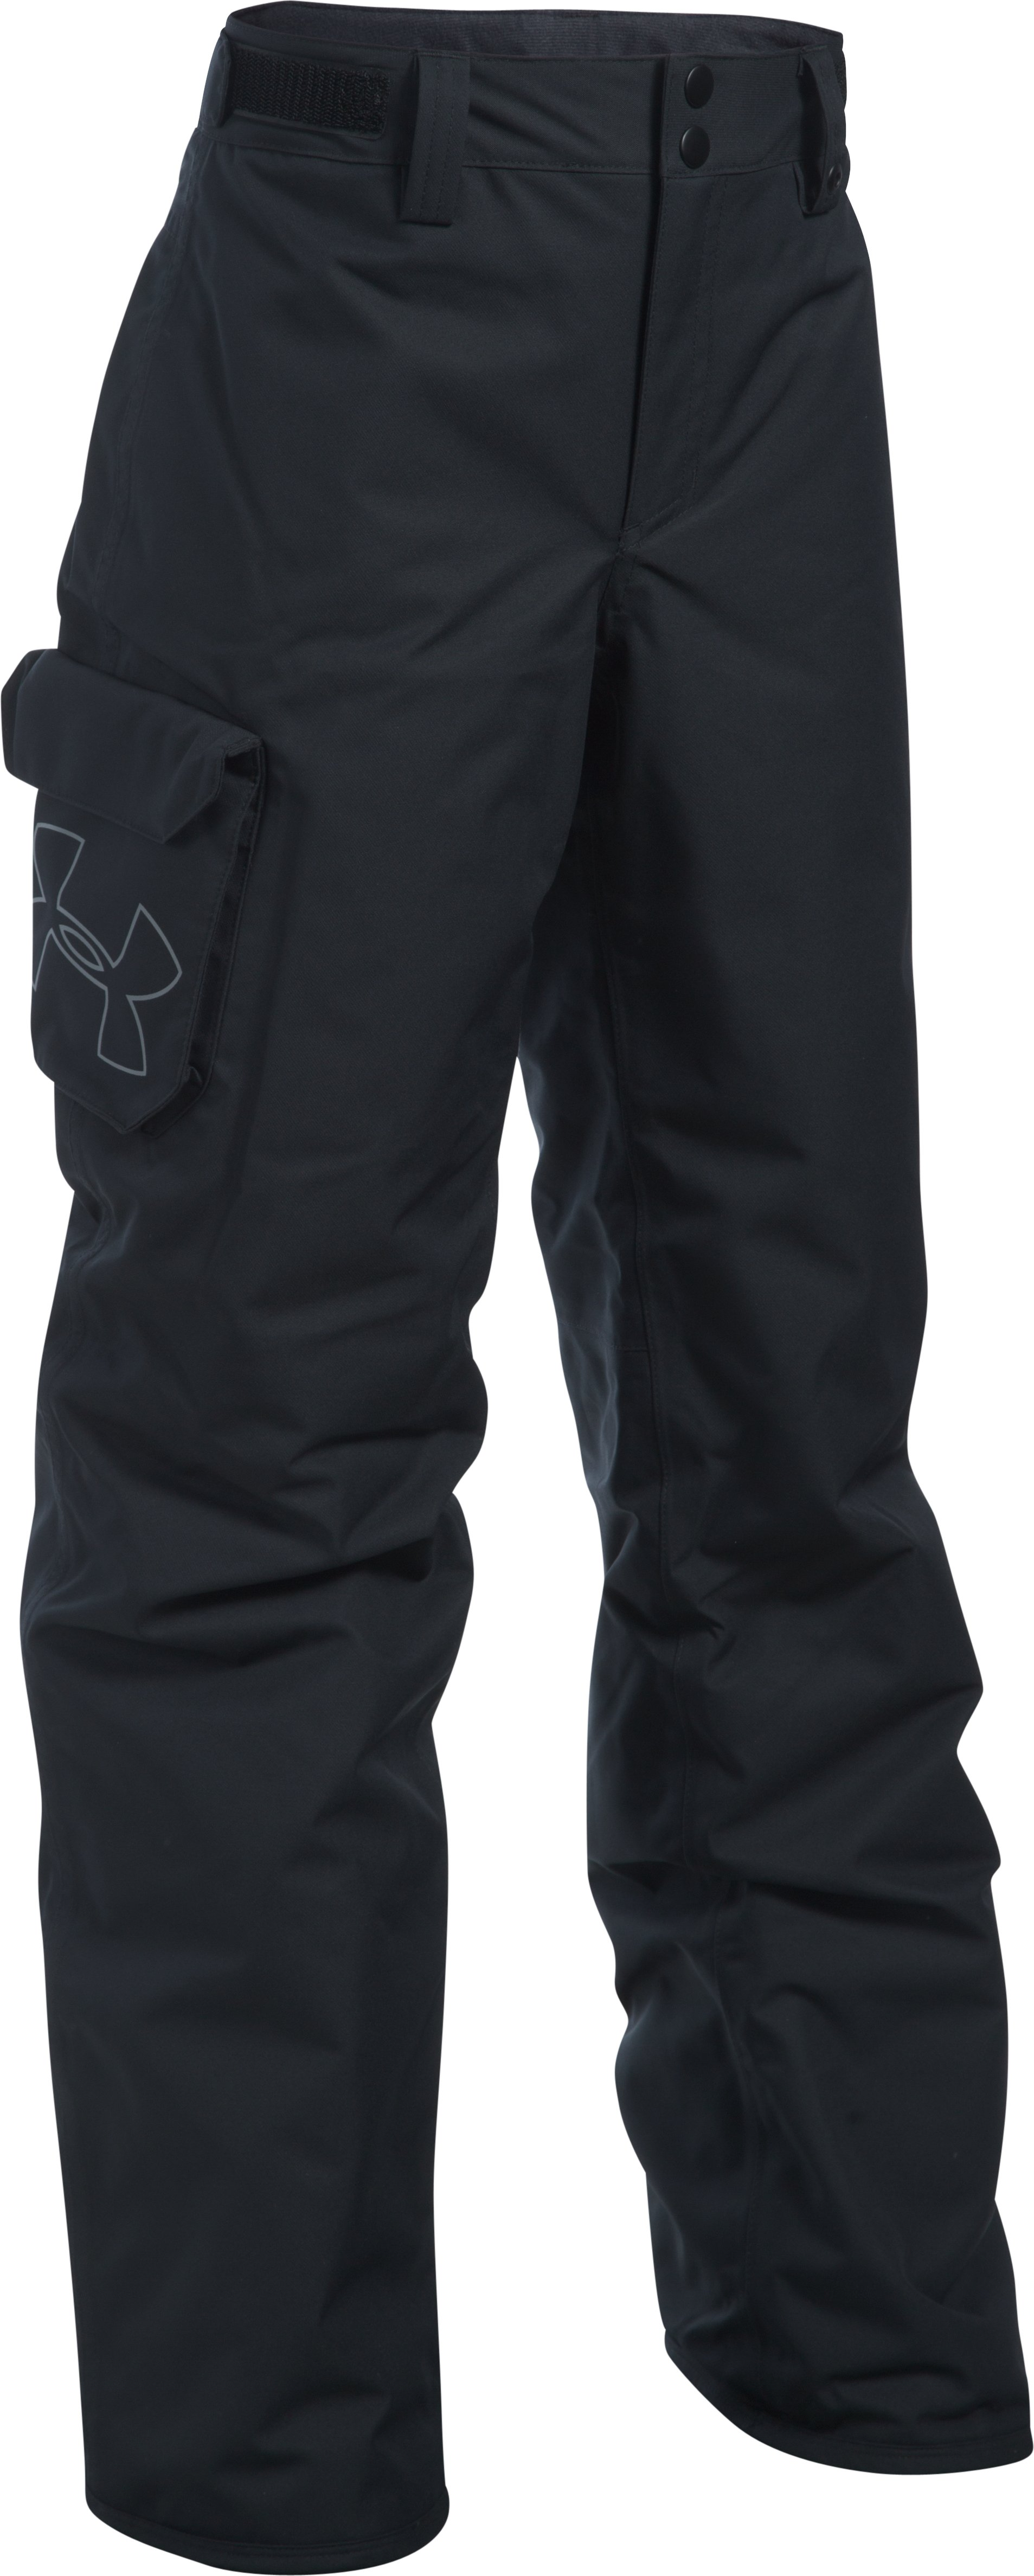 Boys' UA Storm Chutes Insulated Pants, Black , zoomed image